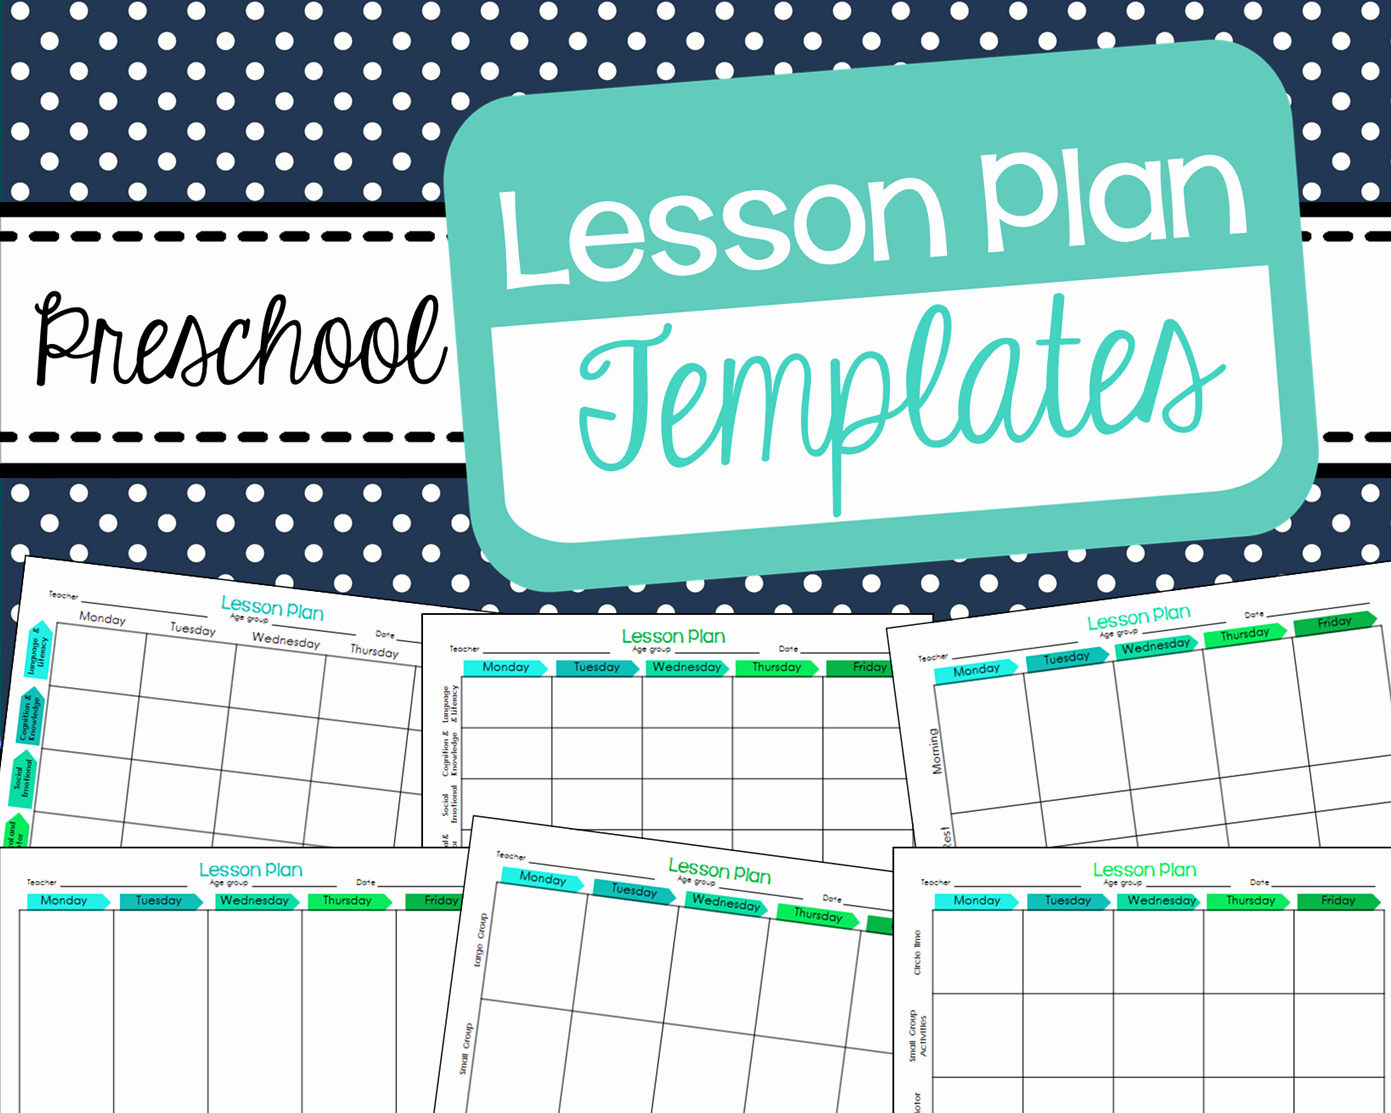 Standards Based Lesson Plan Template Unique Free Preschool Lesson Plan Templates